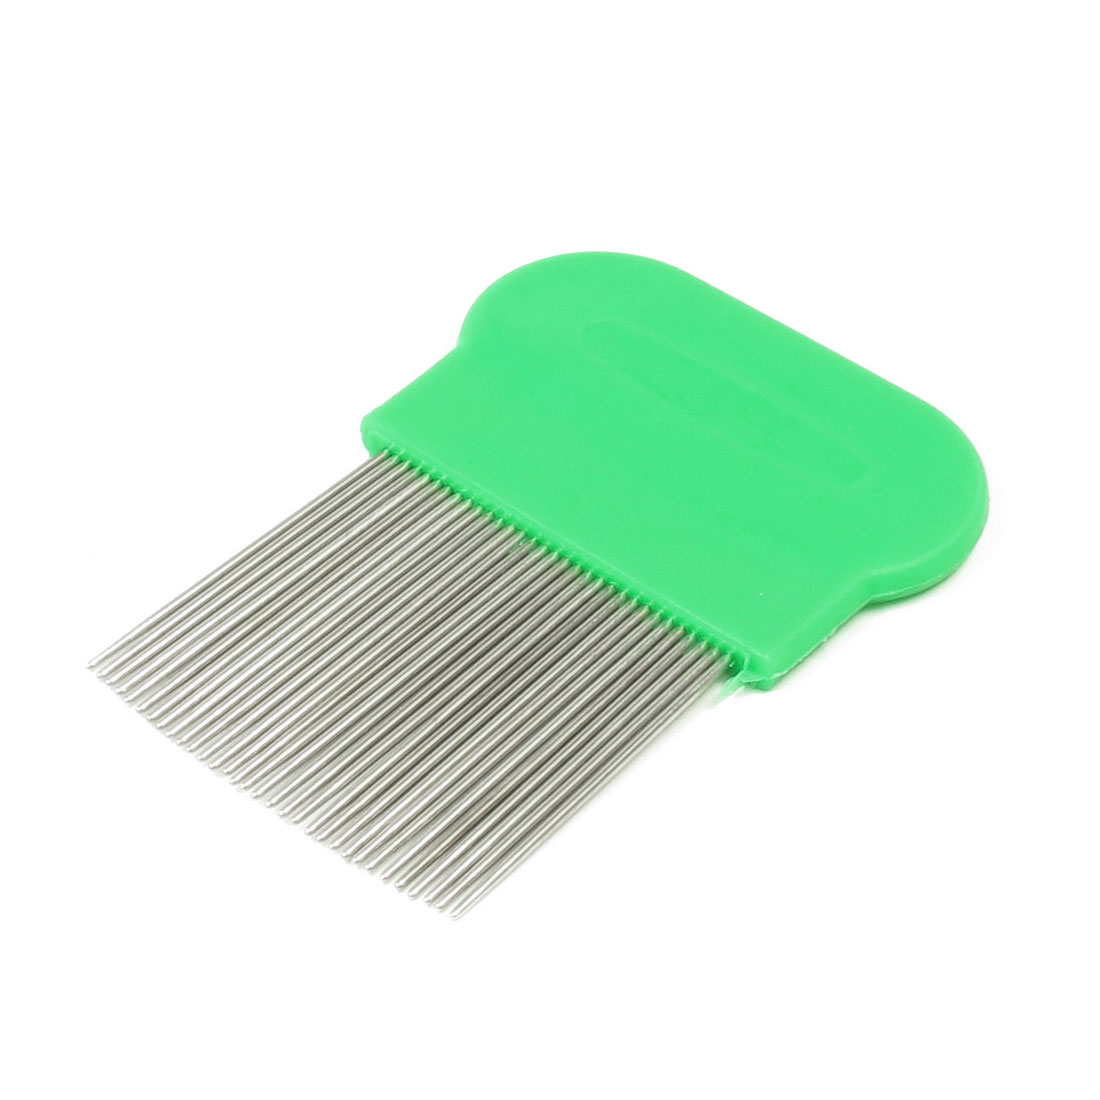 Pet Cat Dog Cleaning Grooming Metal Long Fine Teeth Rake Comb Green